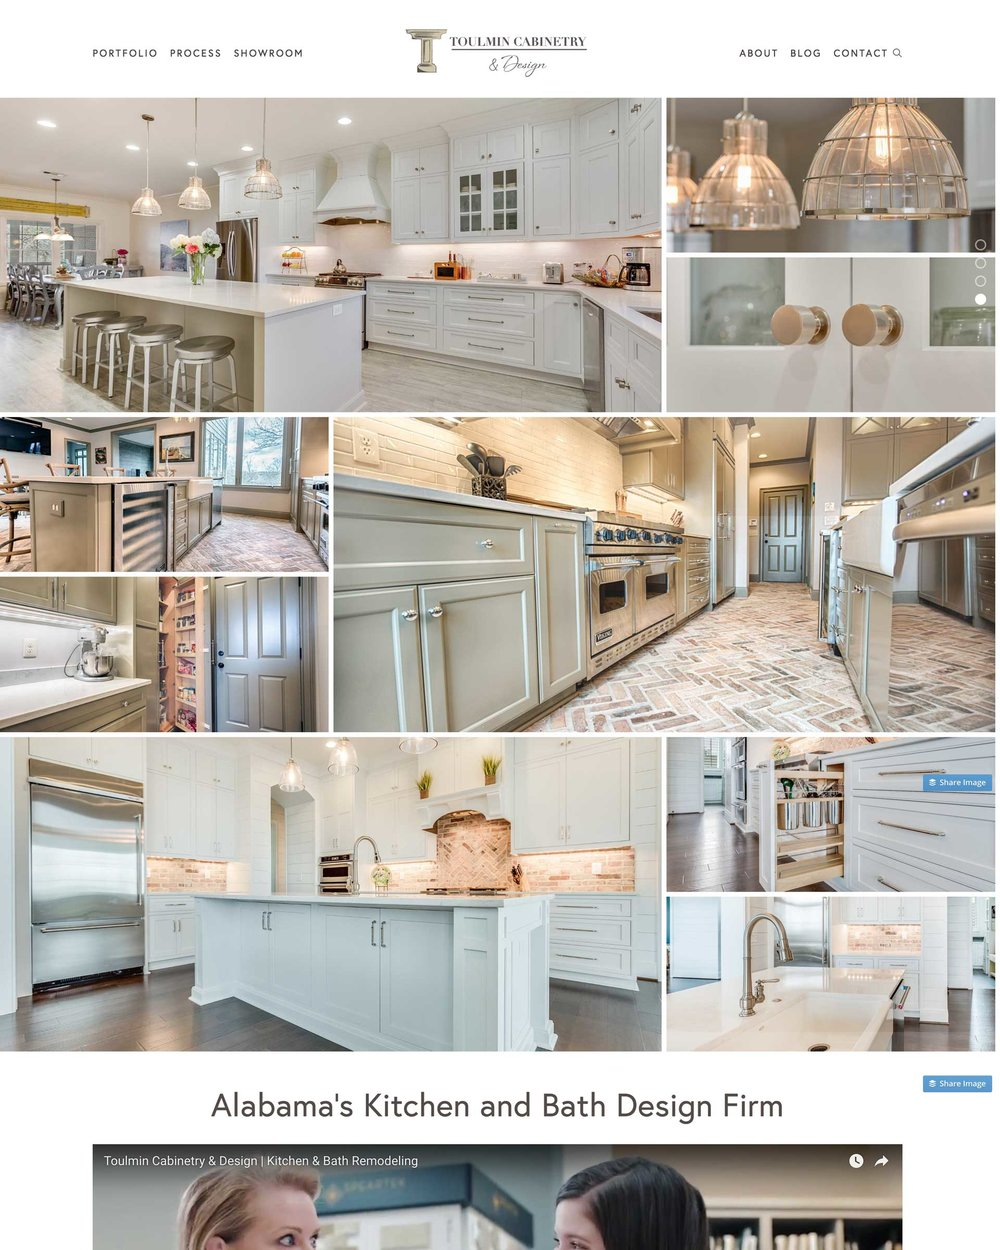 Toulmin Cabinetry and Design - A Cabinetry Showroom and Kitchen and Bath Design-Build Company